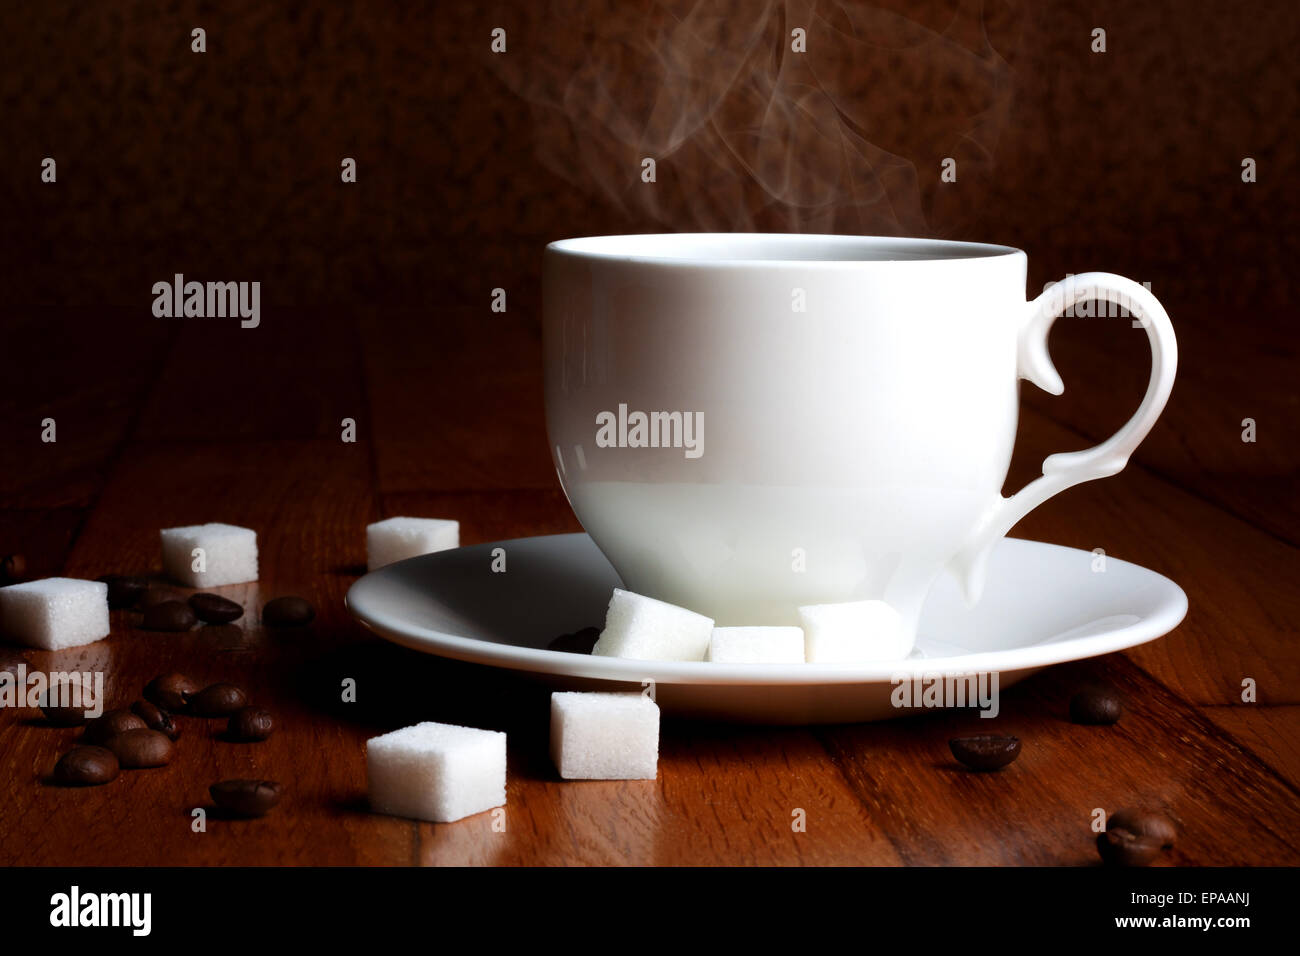 tasse hei en kaffee mit zucker und nat rlichen getreide auf einem holztisch stockfoto bild. Black Bedroom Furniture Sets. Home Design Ideas